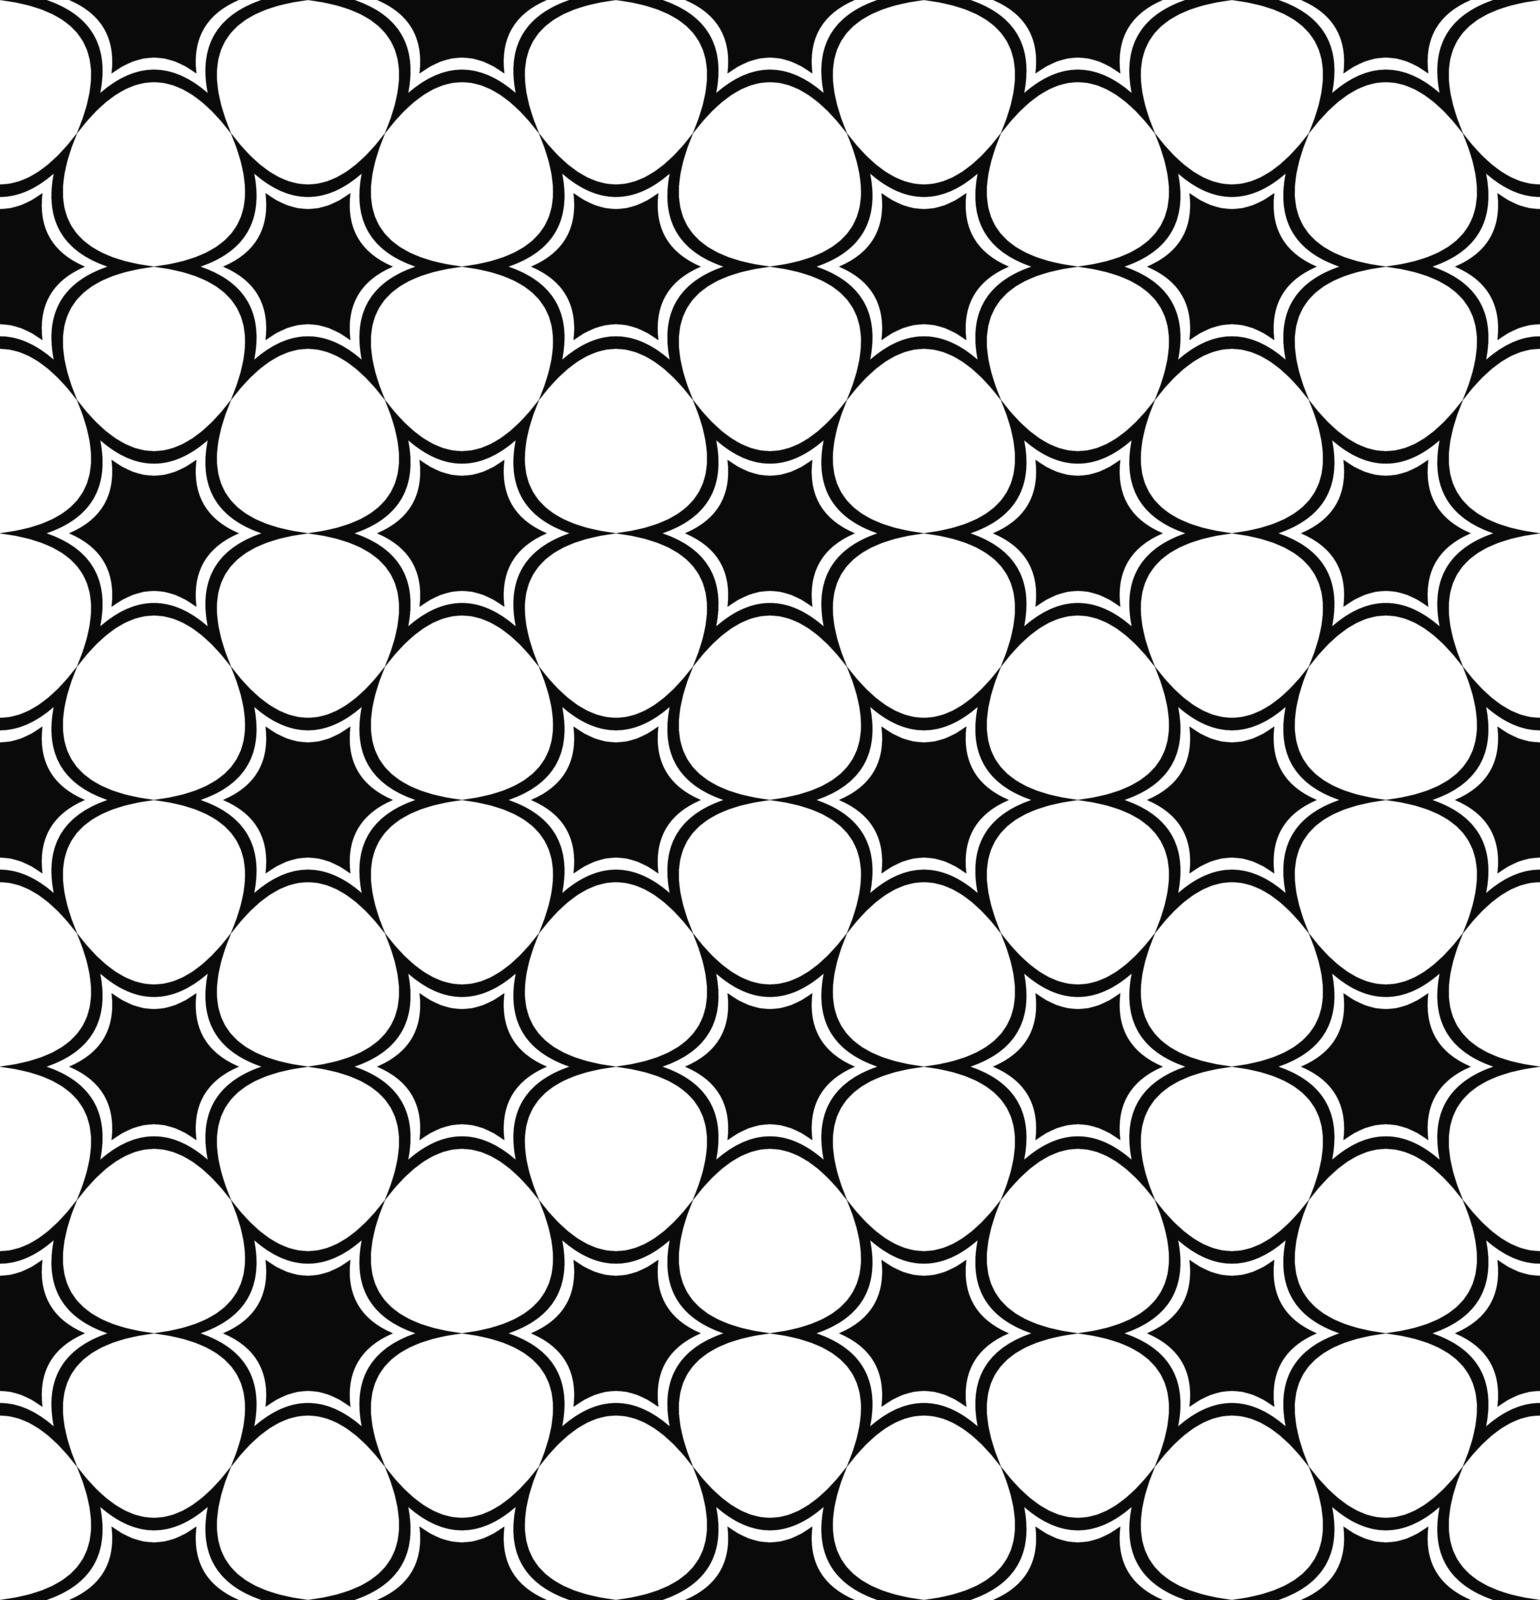 Repeating black and white hexagonal abstract star pattern design background